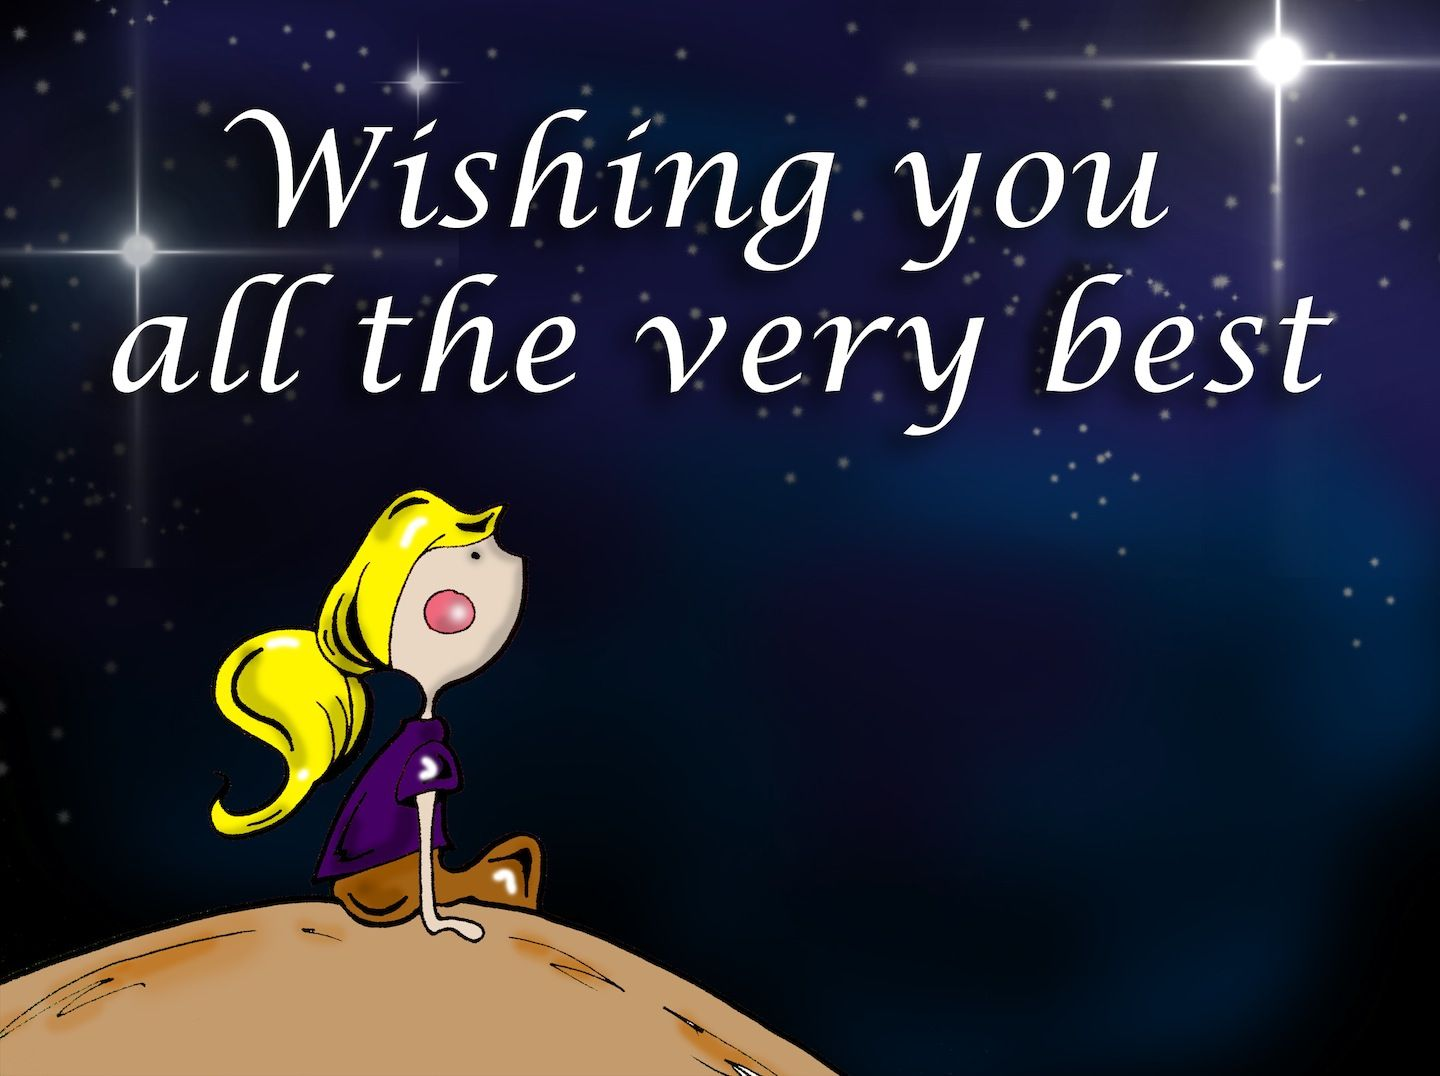 Wallpaper download exam - All The Best Greetings Images 2013 Exams Good Luck Wishses